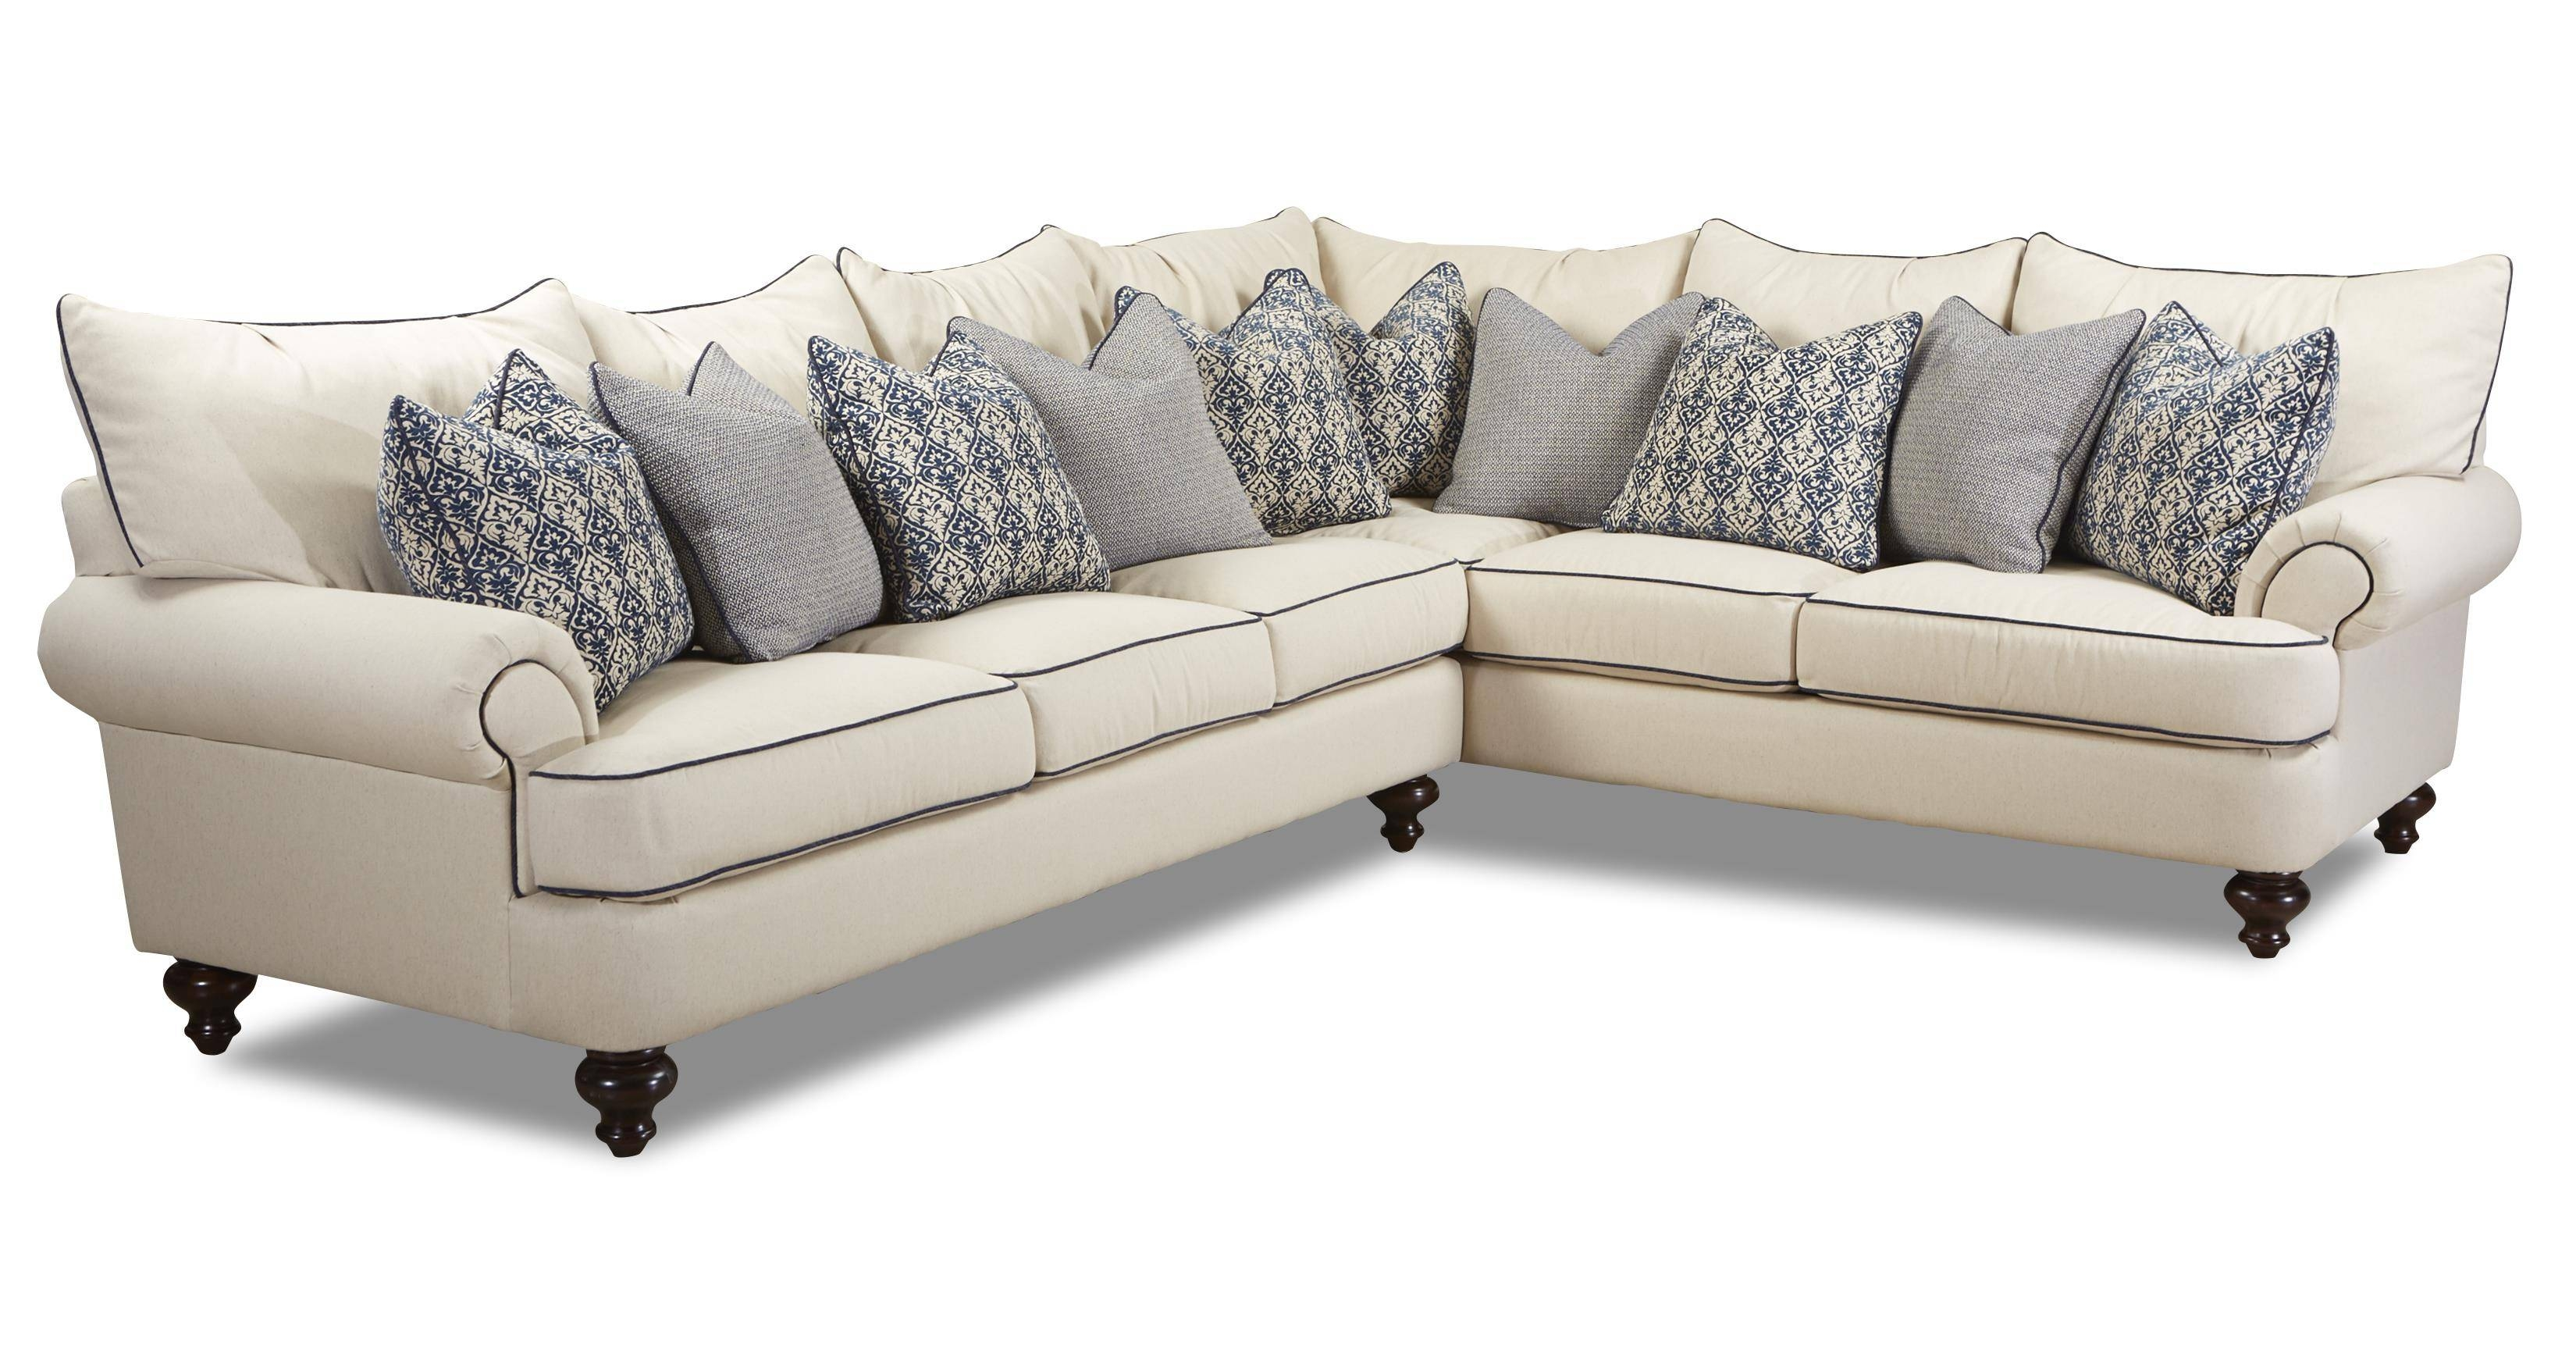 Shabby Chic Sectional Sofaklaussner | Wolf And Gardiner Wolf within Shabby Chic Sofa (Image 17 of 30)